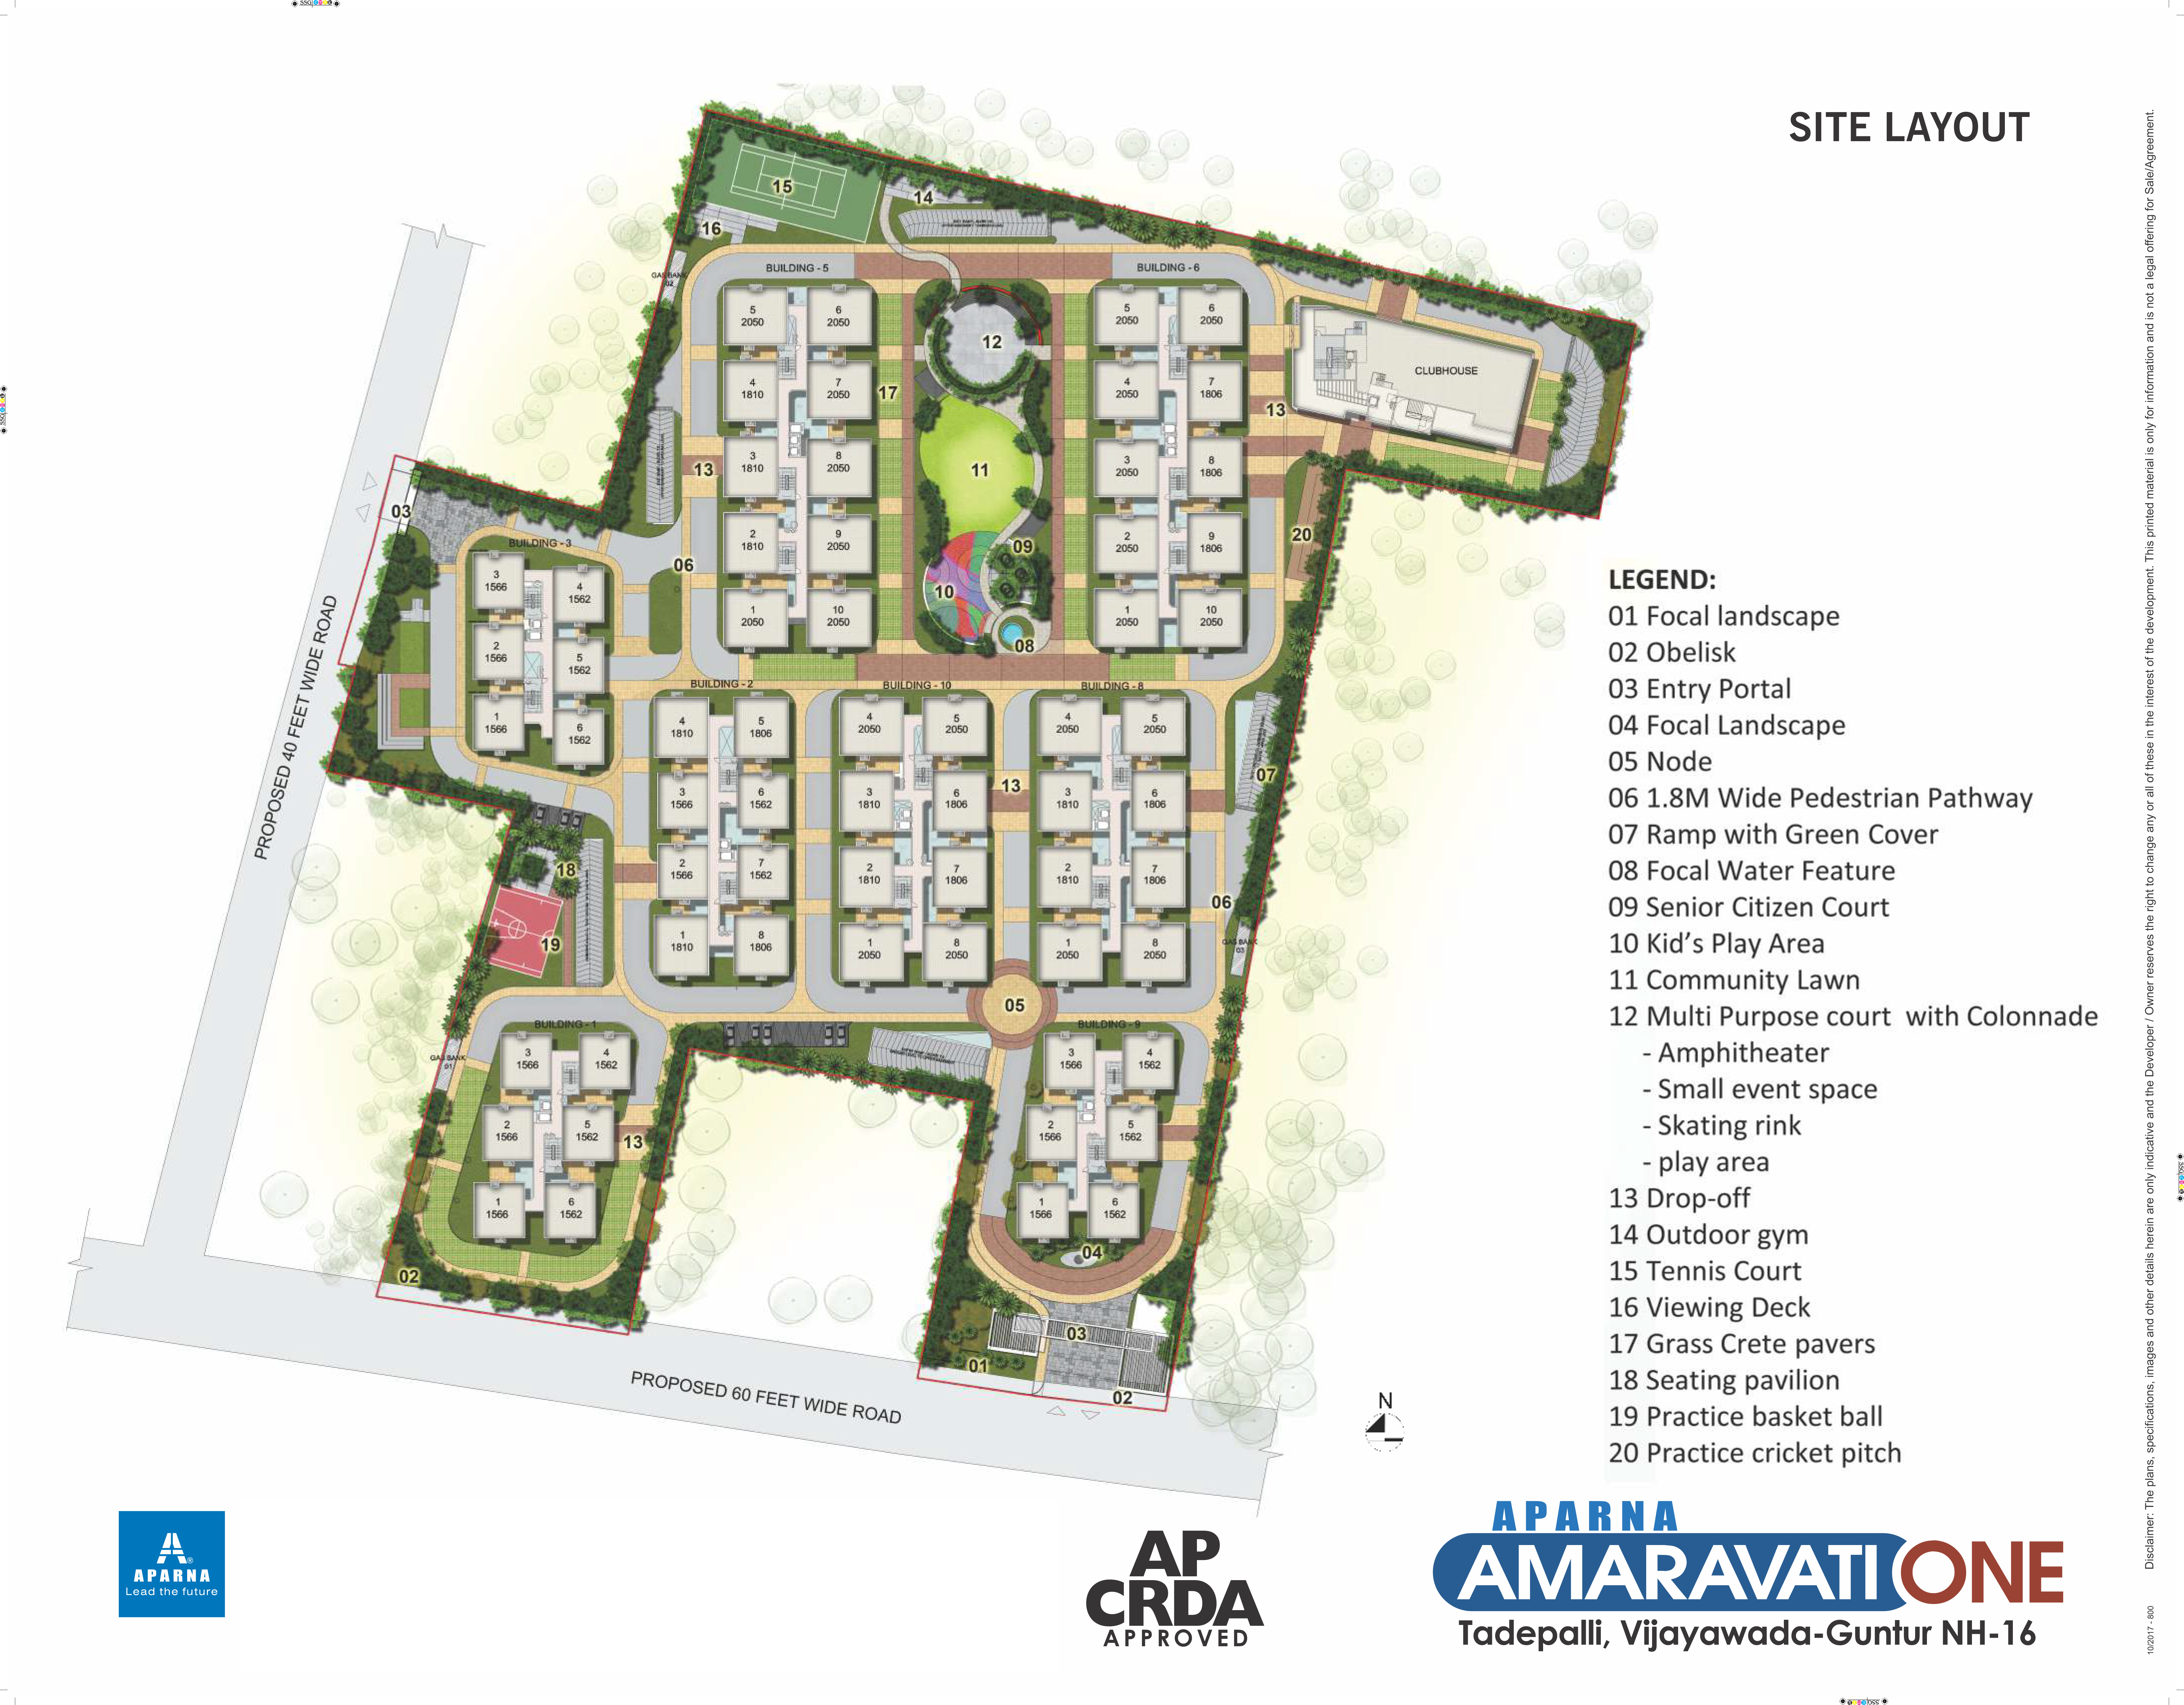 New Gated Community Flats In Vijayawada For Sale Aparna Amaravati One Project Was About The Building A 2 Room House With Parallel Circuit Site Layout